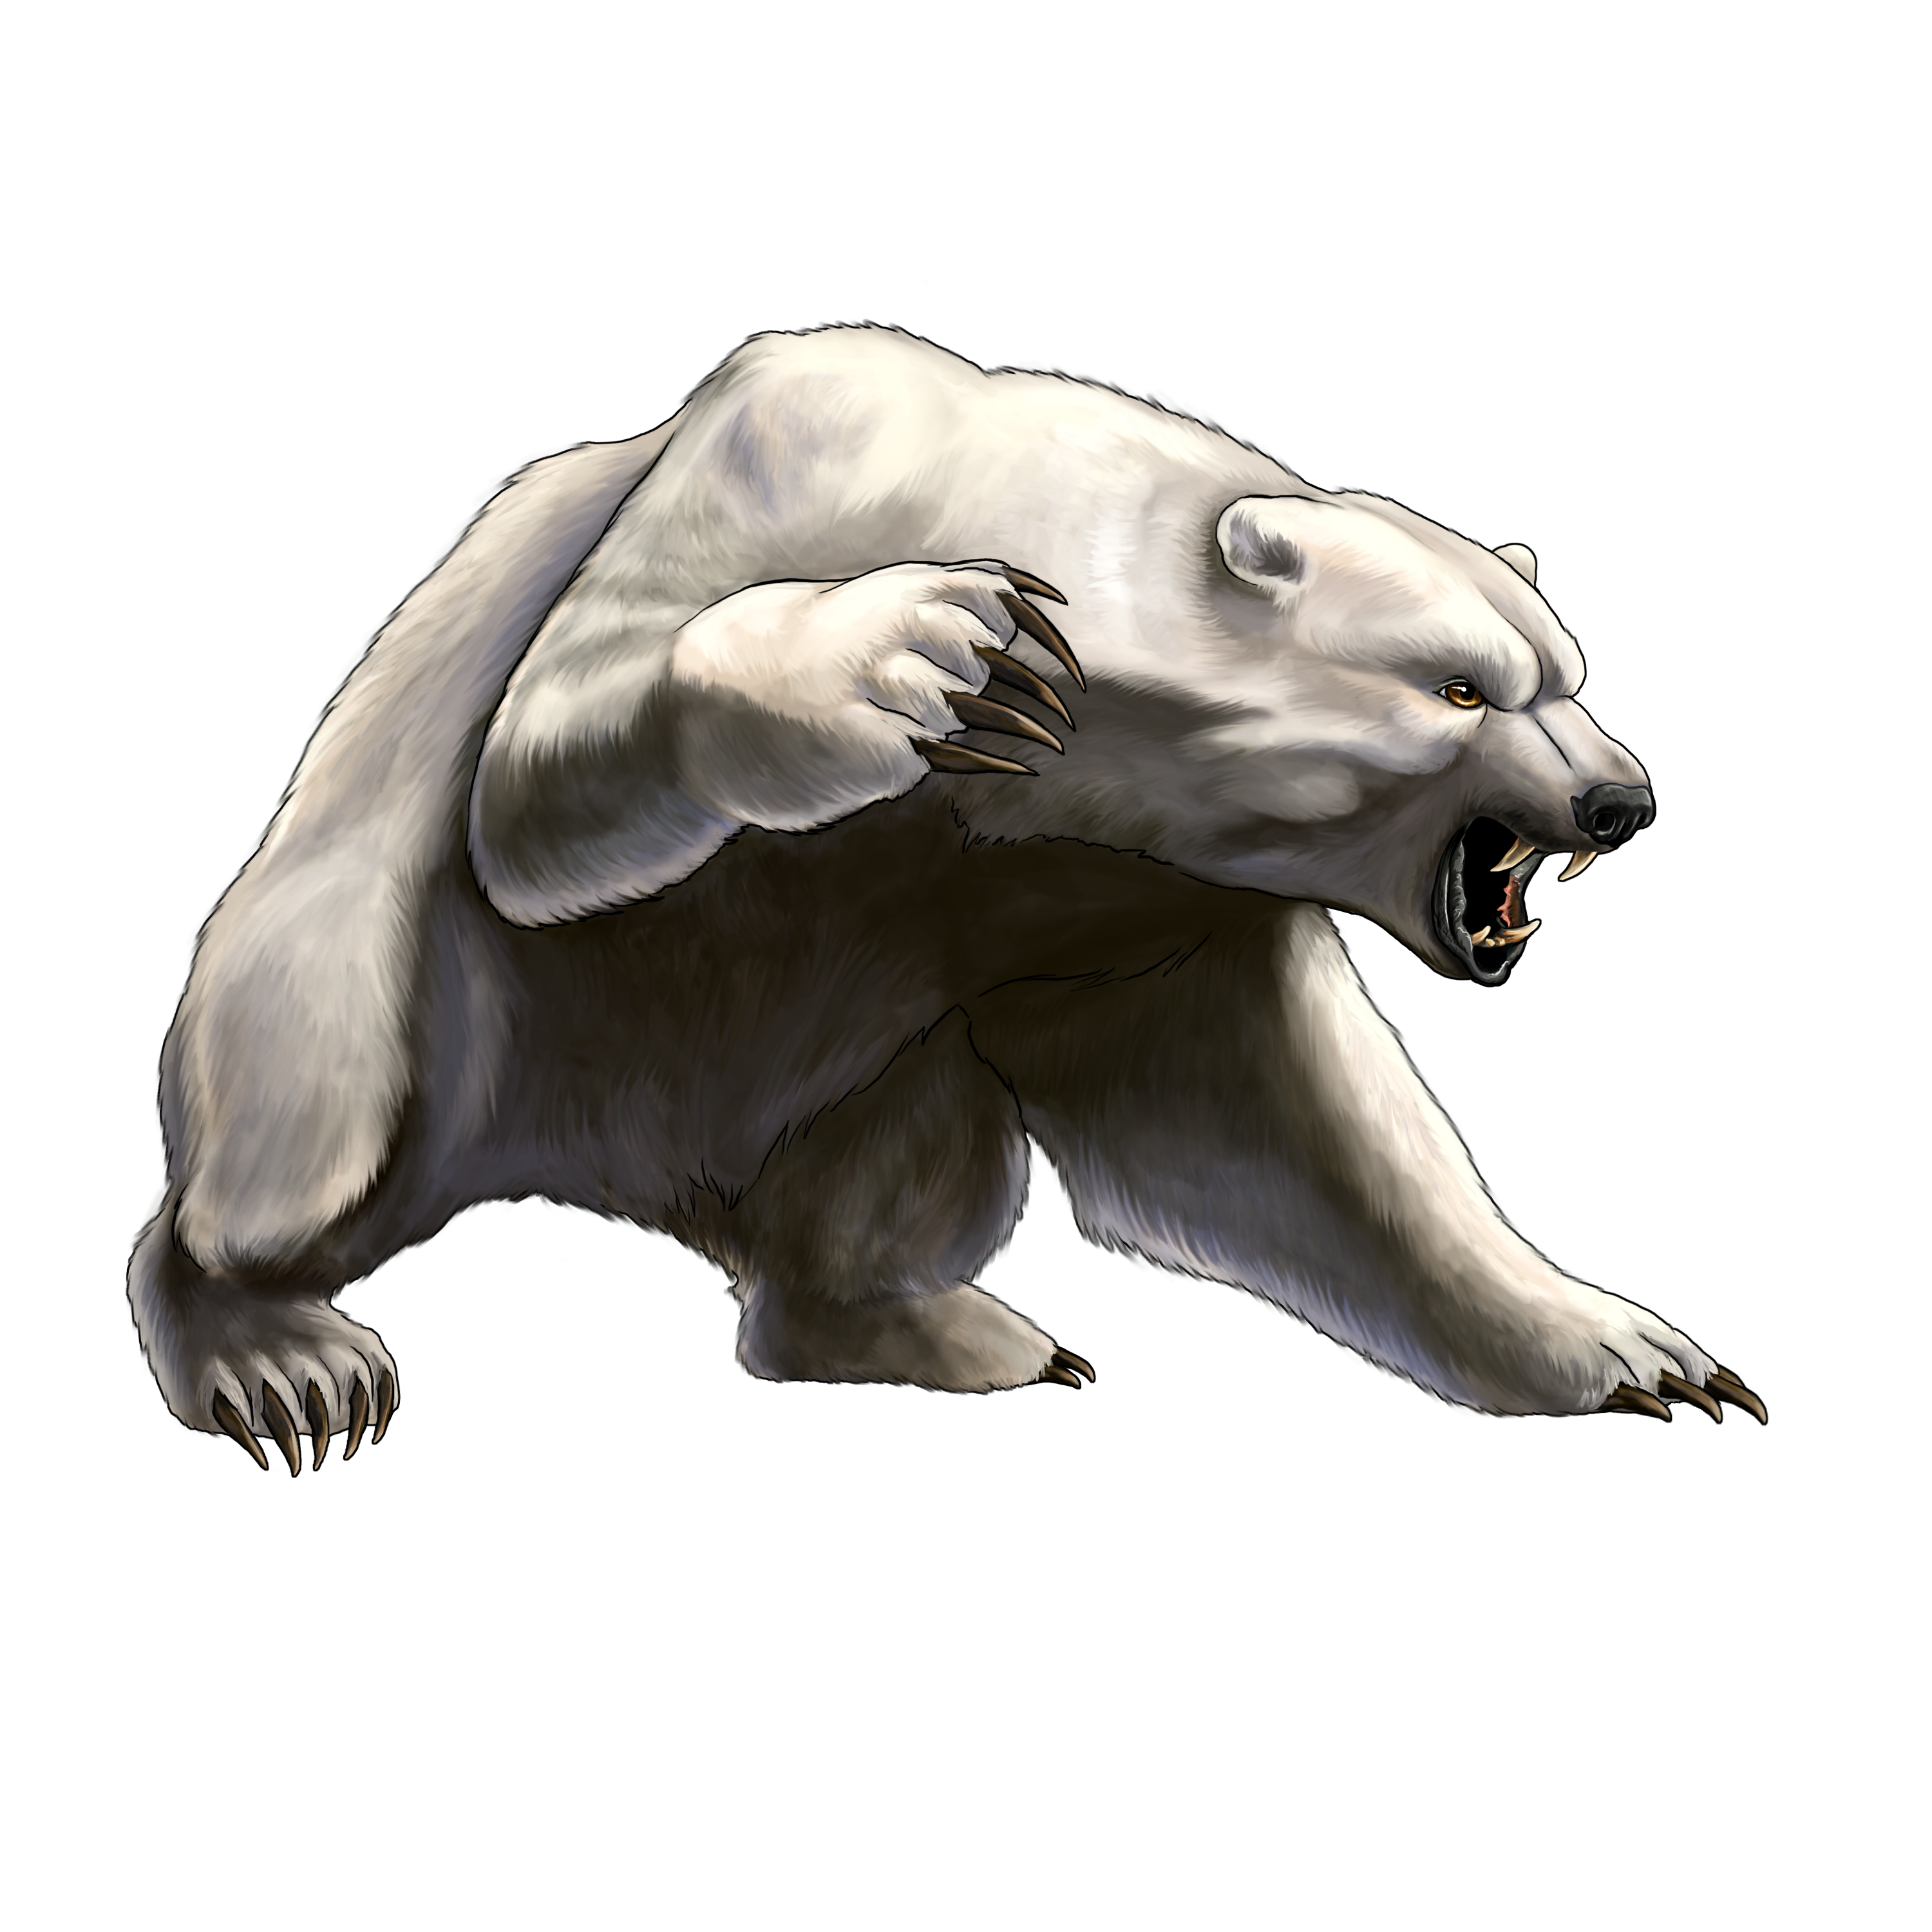 Drawn polar  bear angry Clipartion #29825 Bear Clipart Angry